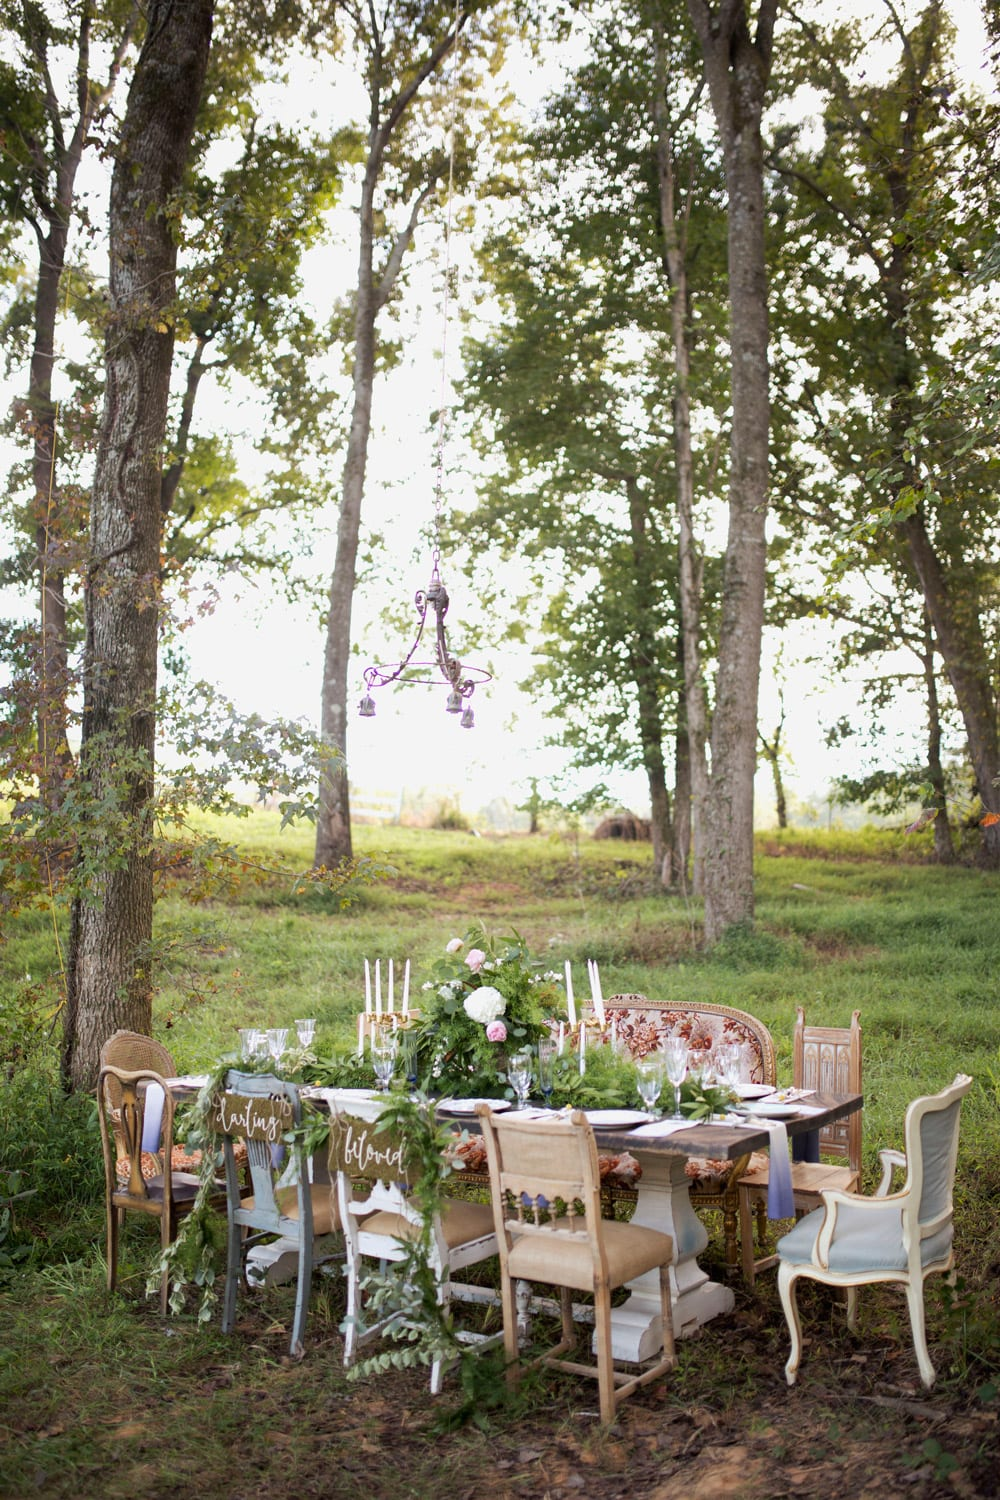 Dinner table set in the woods